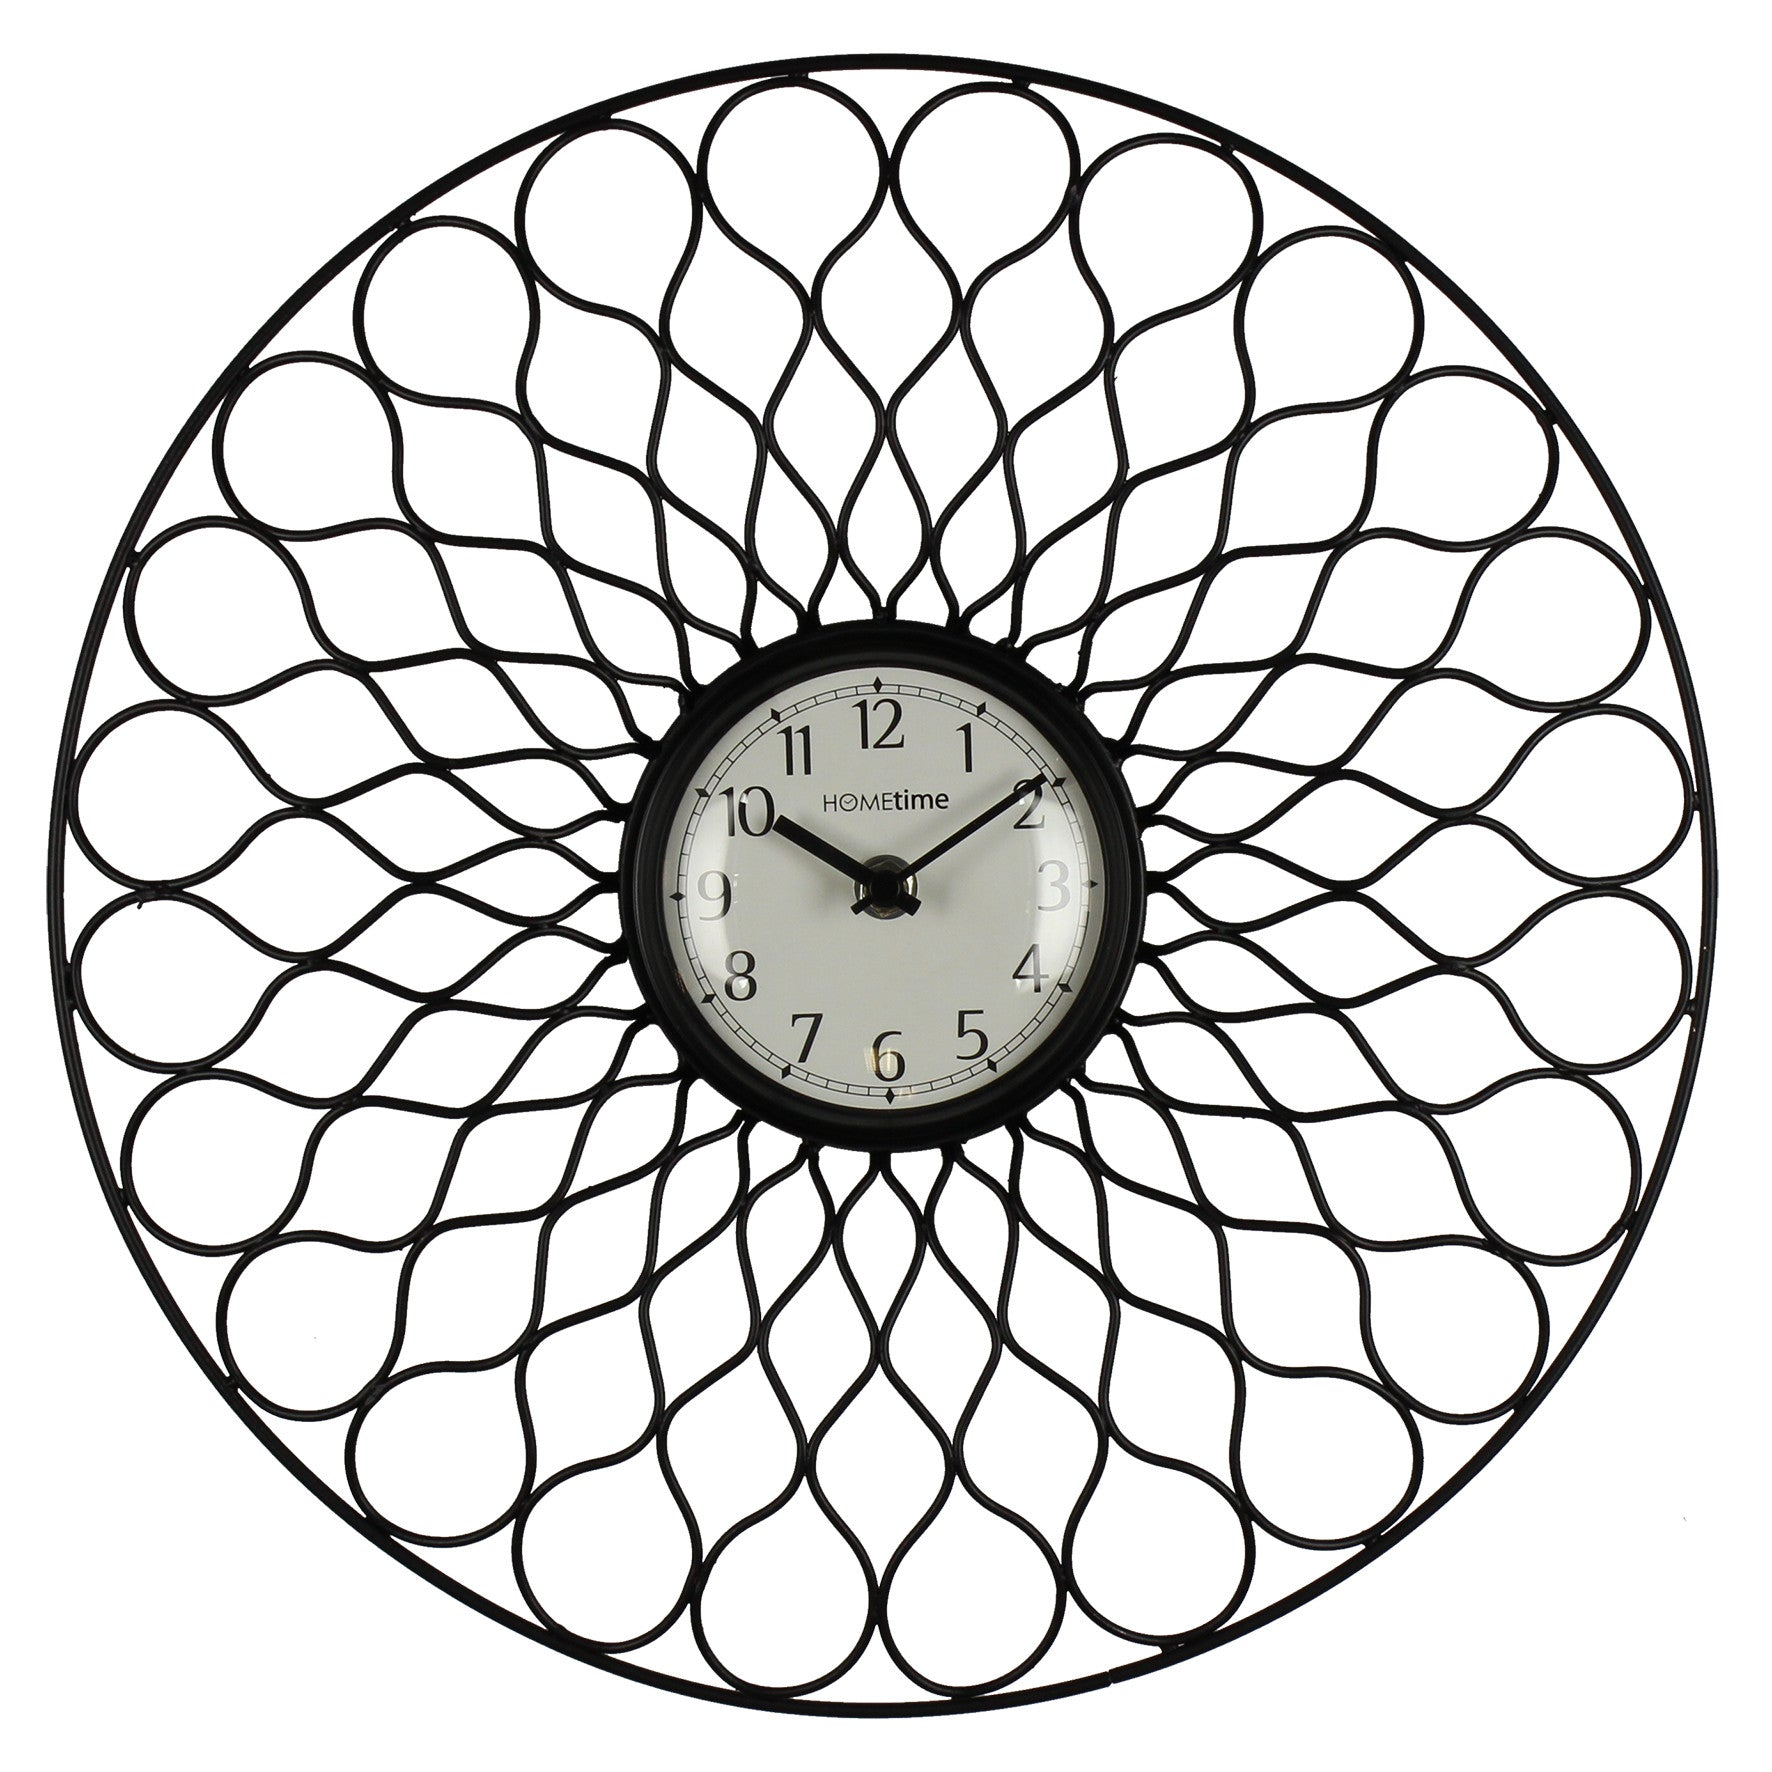 Hometime Round Metal Wall Clock-W7672 - Homely Nigeria